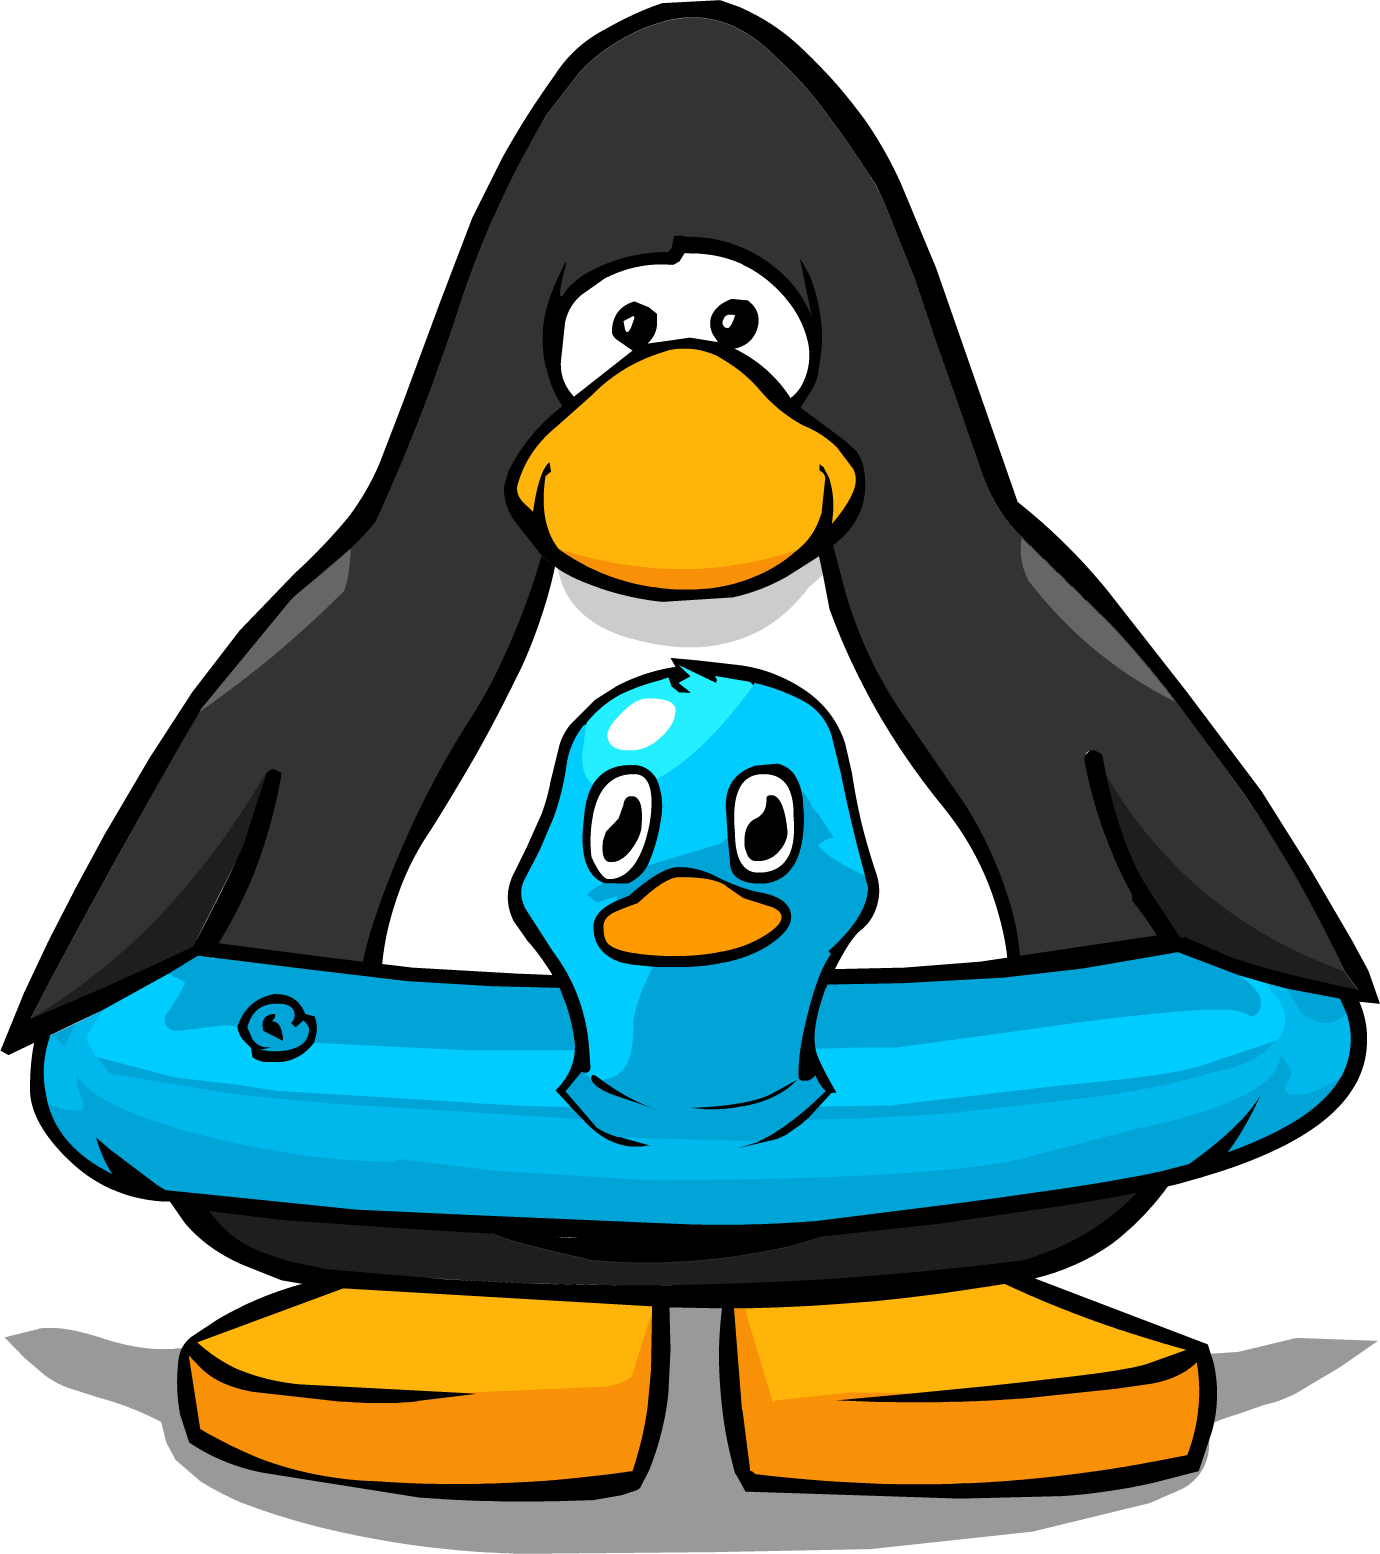 Image blue duck from. Clipart penguin swimming